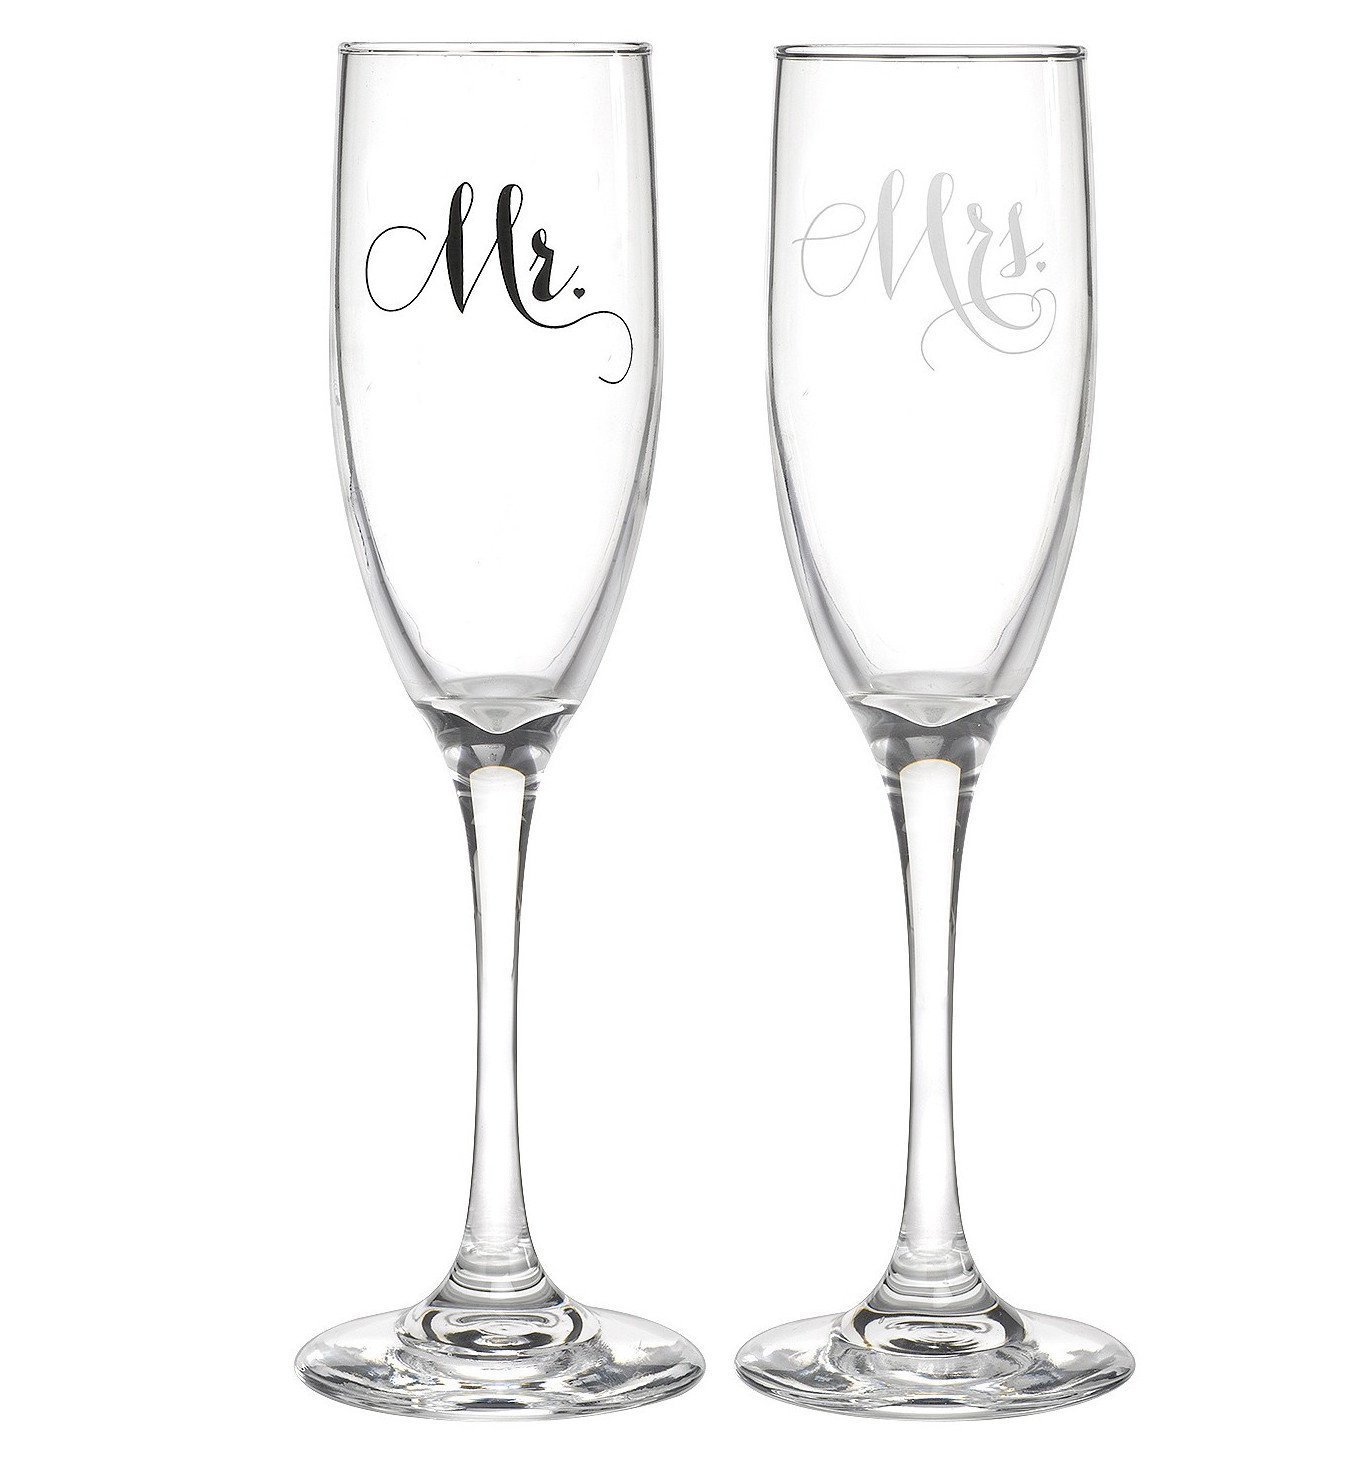 All Things Weddings, Mr. and Mrs. Wedding Glass Champagne Toasting Flutes, Reception or Engagement Bride and Groom Glasses, Set of 2 by All Things Weddings (Image #1)